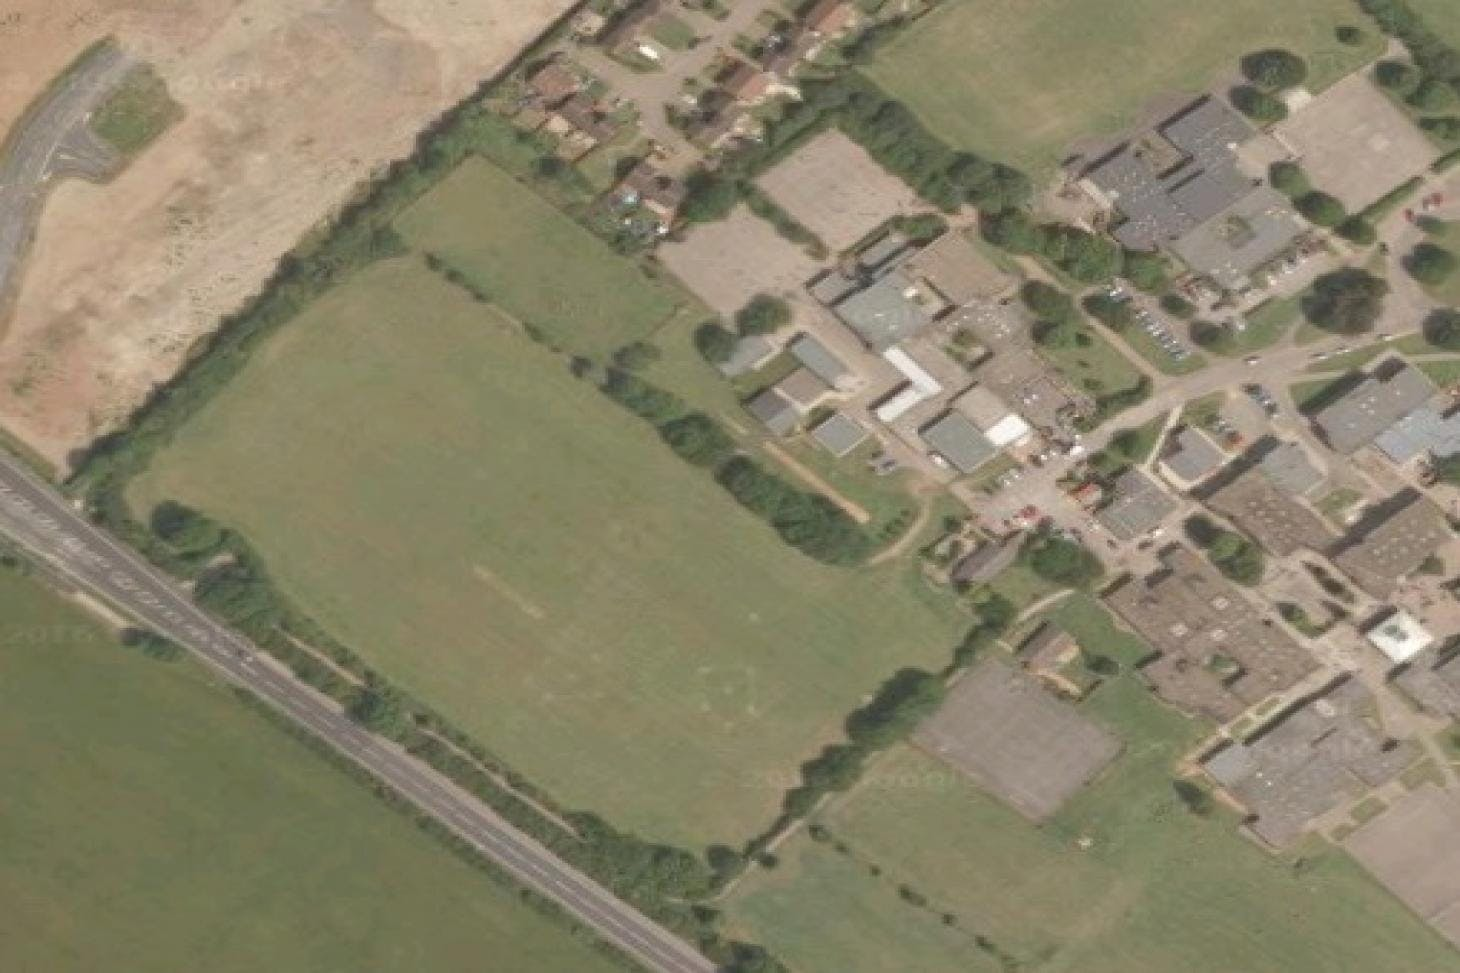 Streetfield Middle School Union | Grass rugby pitch